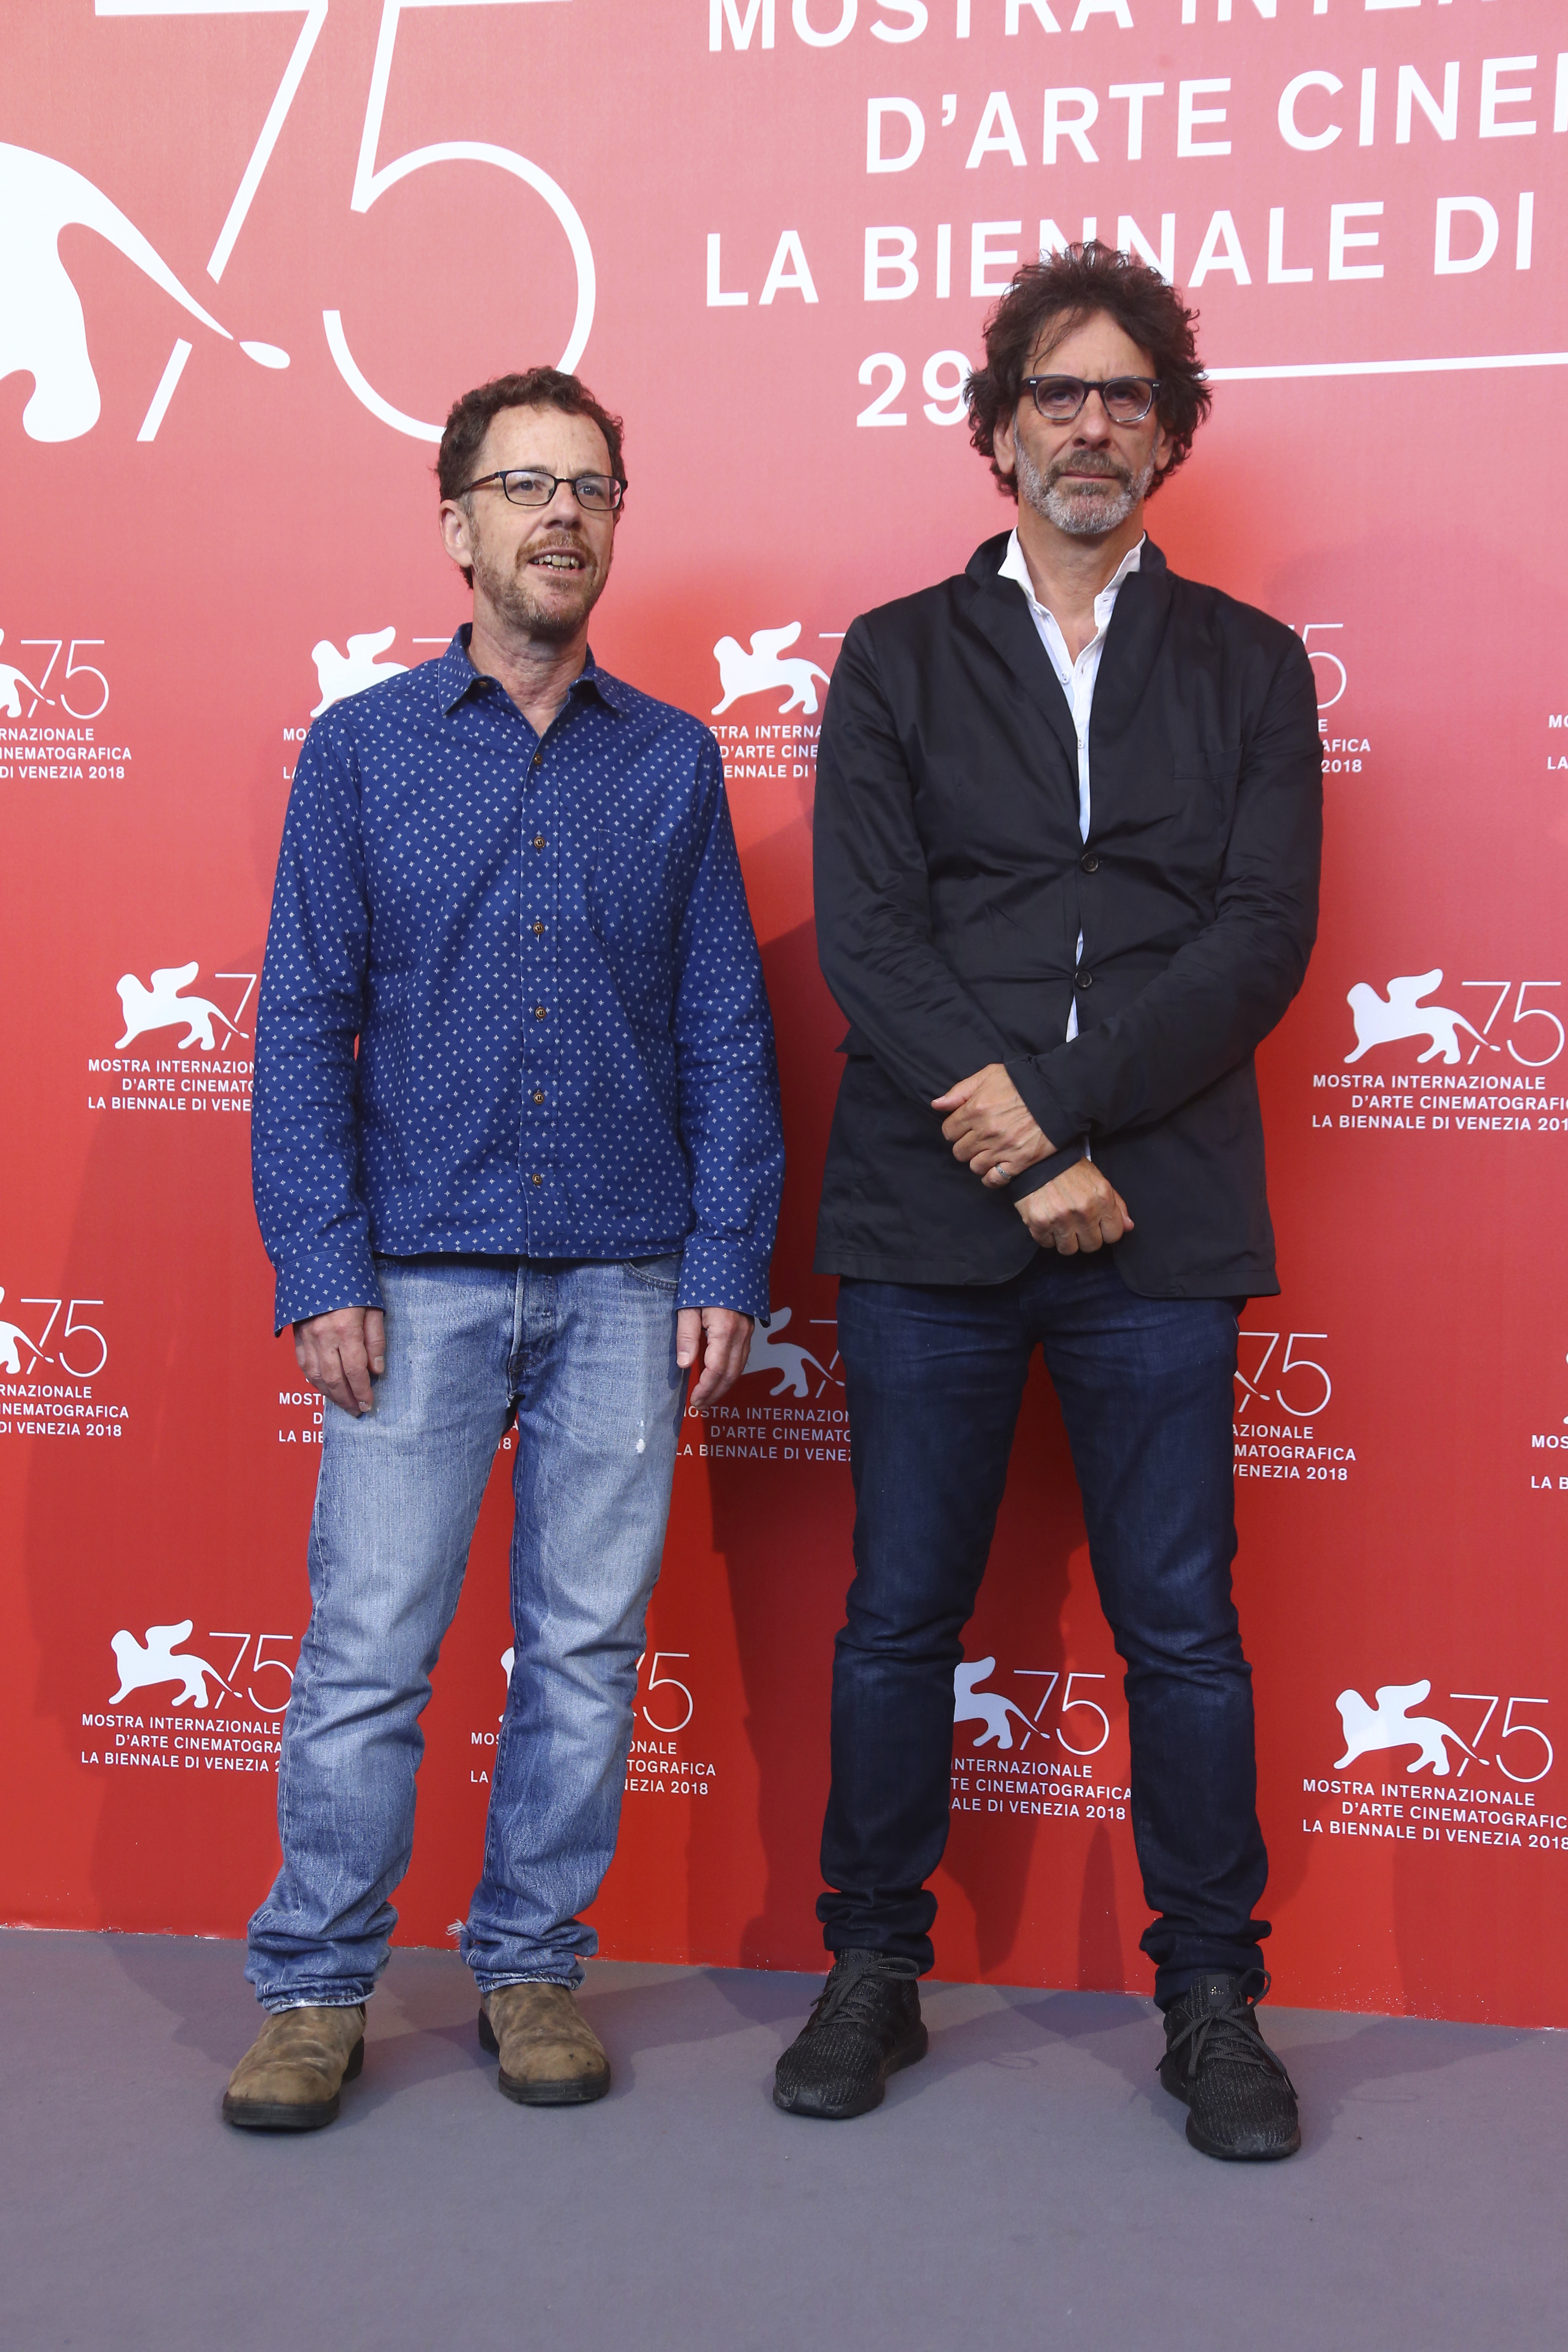 Directors Ethan Coen, left, and Joel Coen pose for photographers at the photo call for the film 'The Ballad of Buster Scruggs' at the 75th edition of the Venice Film Festival in Venice, Italy, Friday, Aug. 31, 2018. (Photo by Joel C Ryan/Invision/AP)